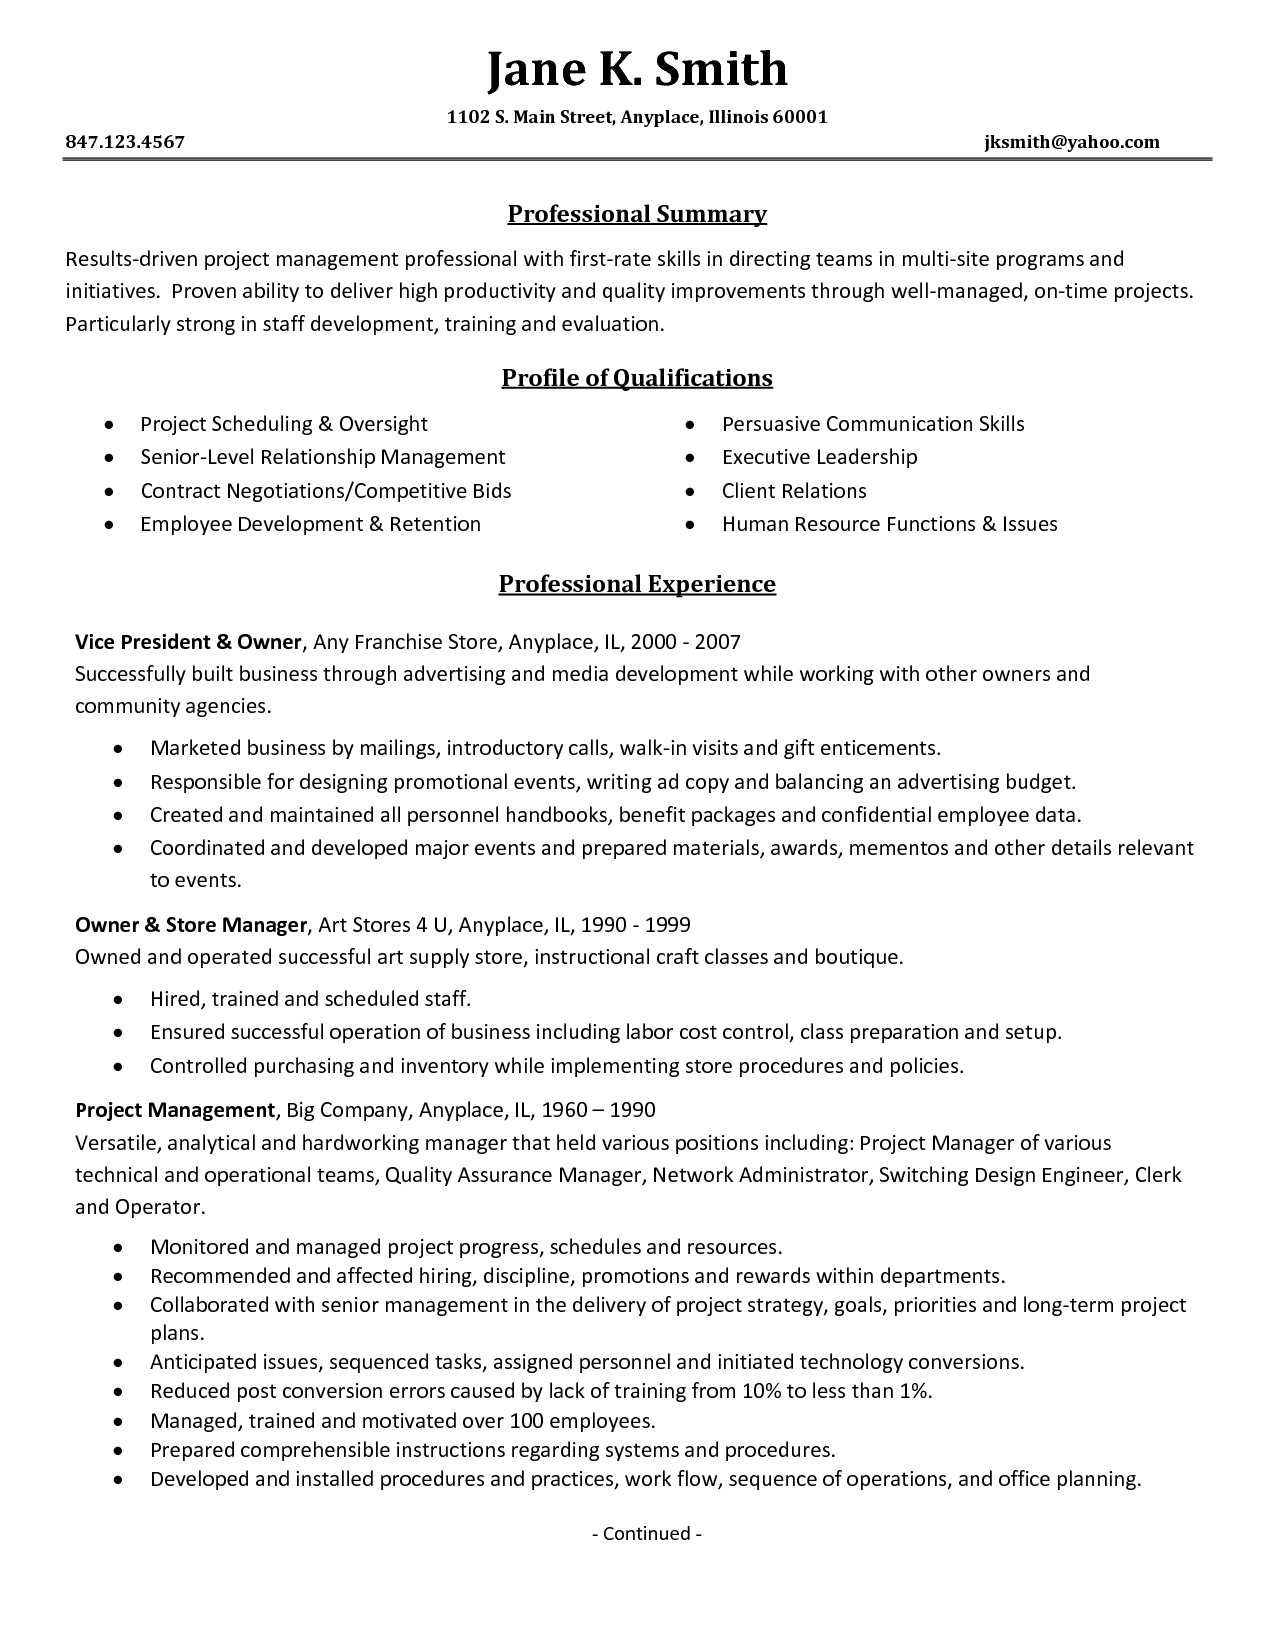 ready made resumes